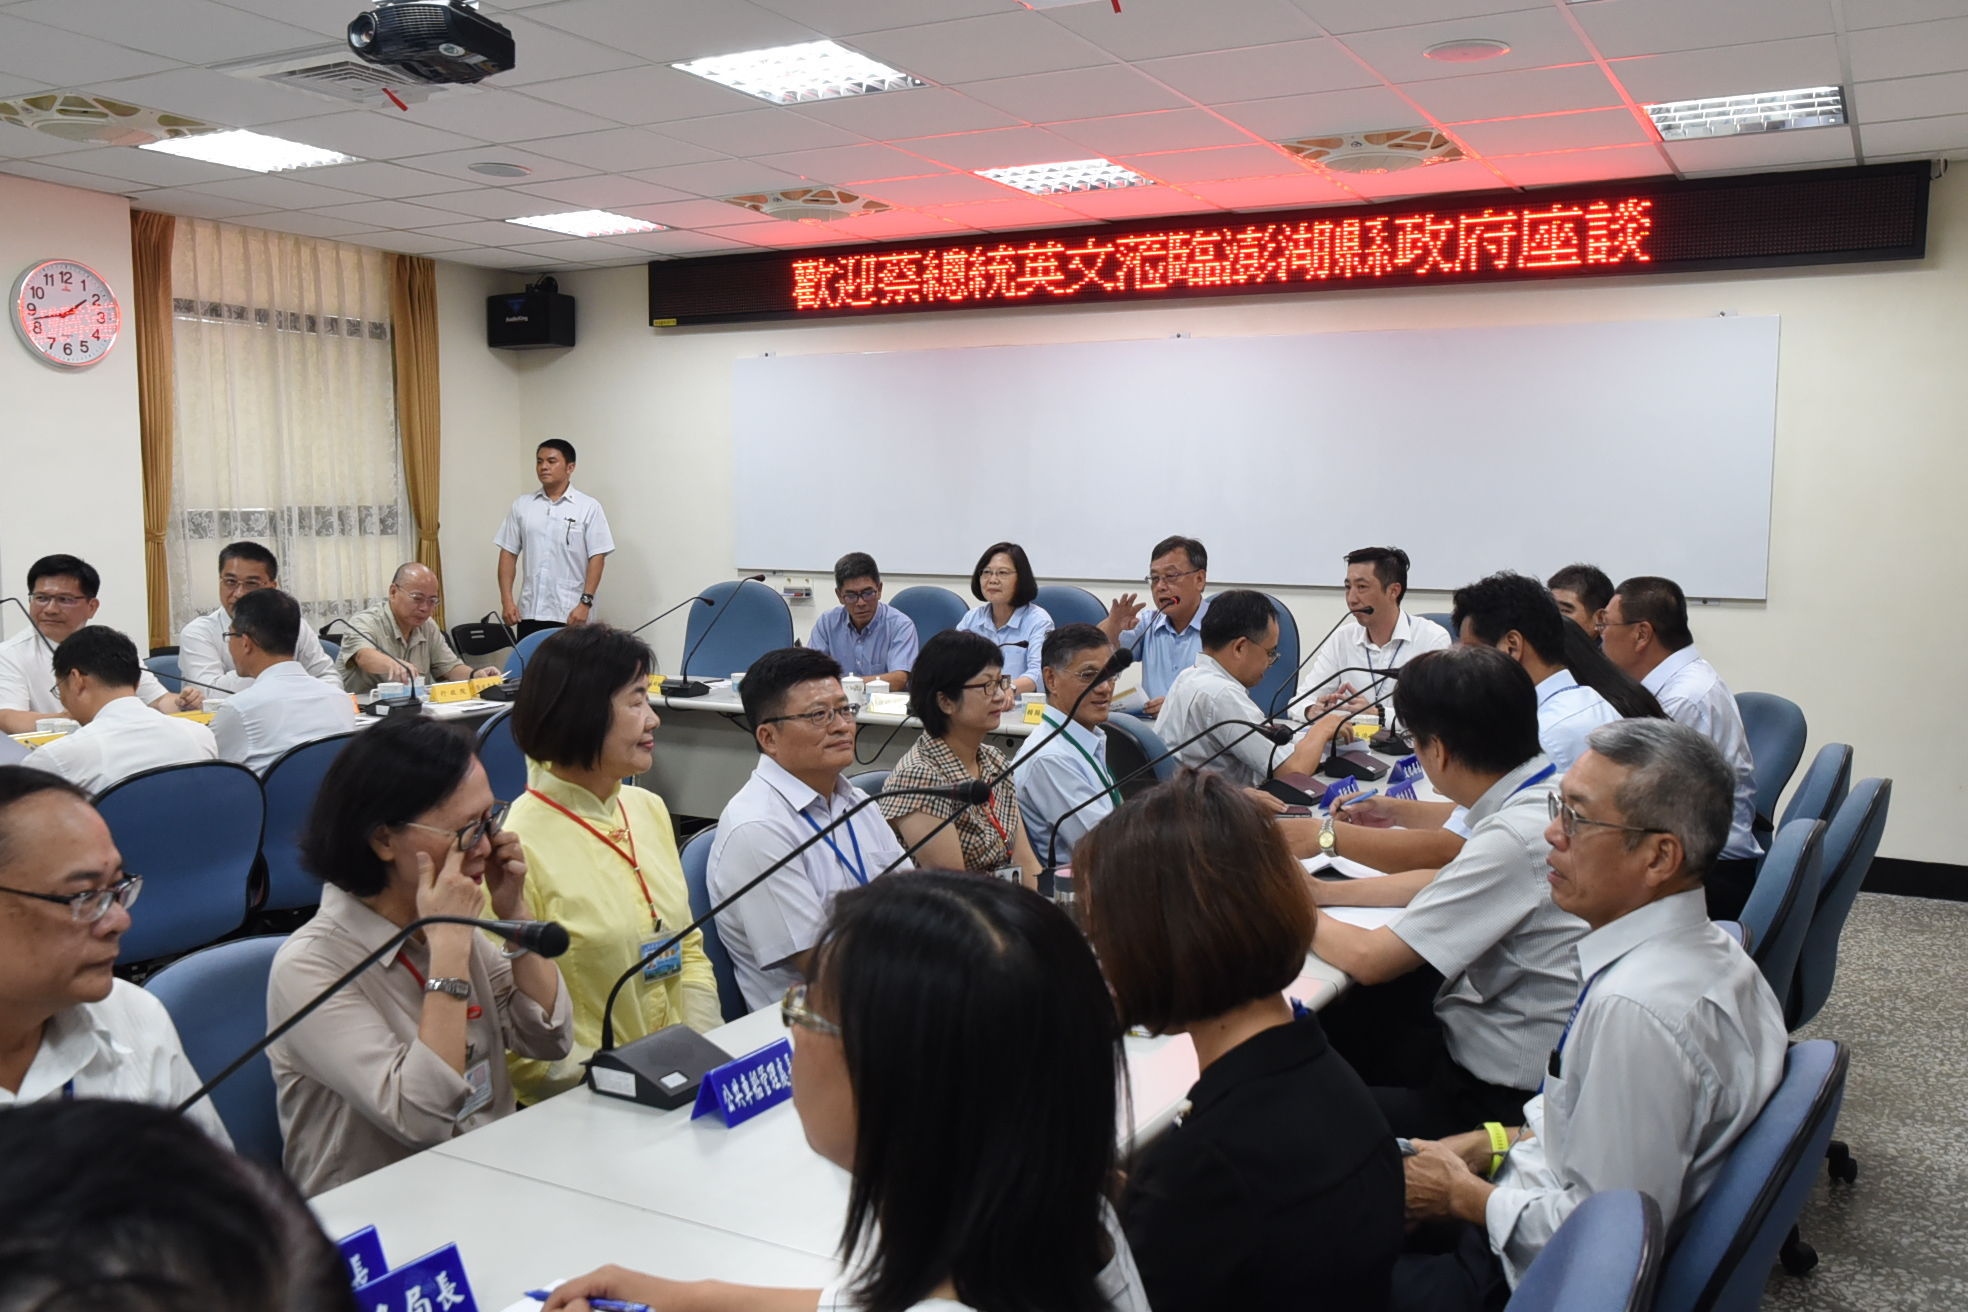 President Tsai Ing-Wen debriefed on the local construction at Penghu County Government office